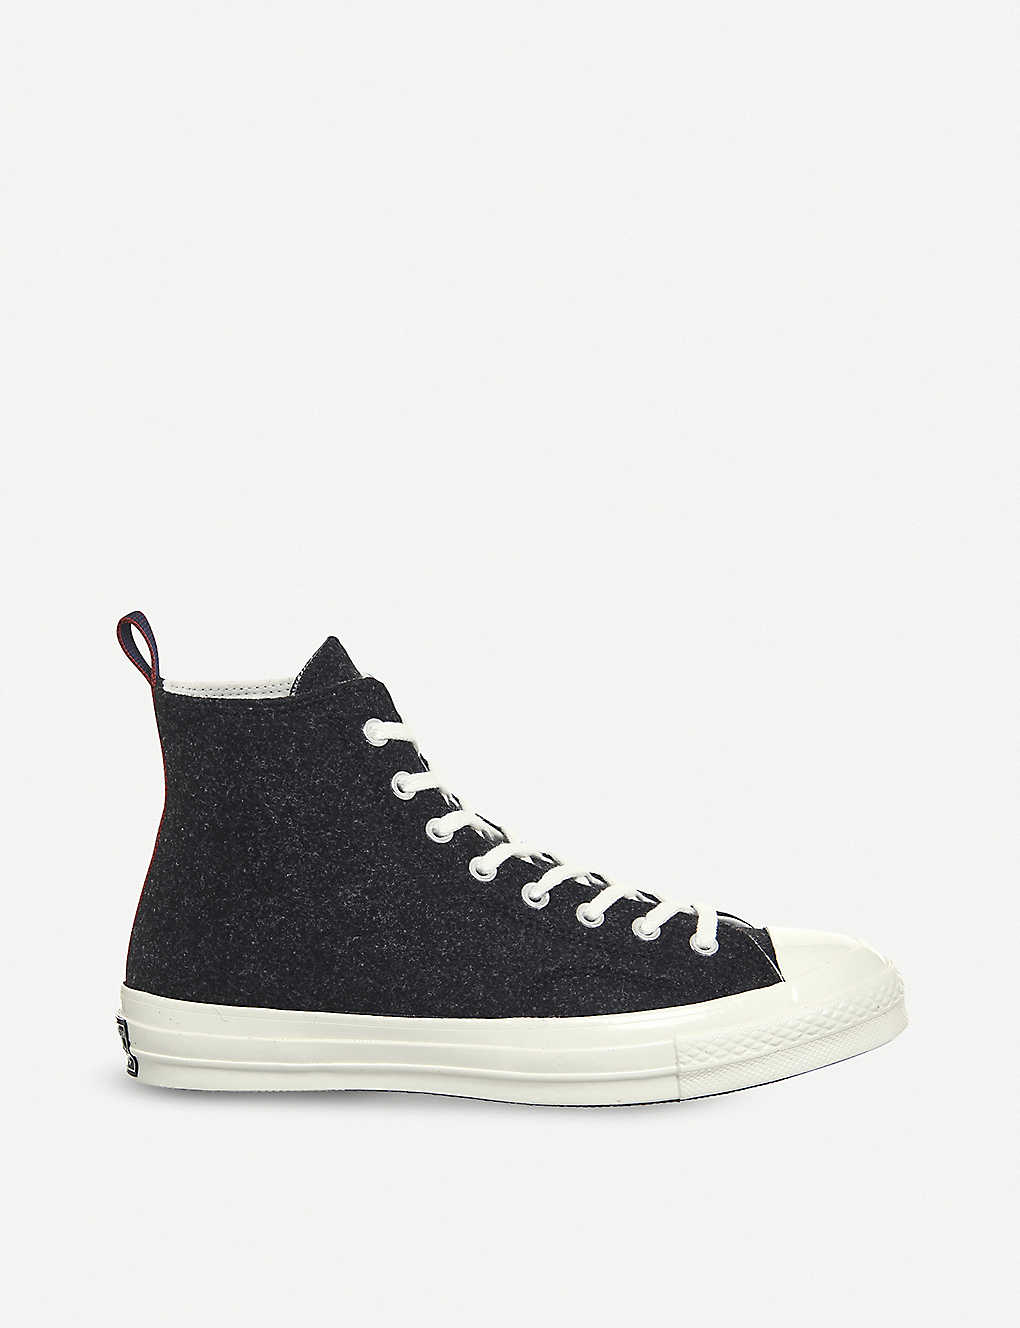 CONVERSE - All Star 70s high-top trainers  c15eba270